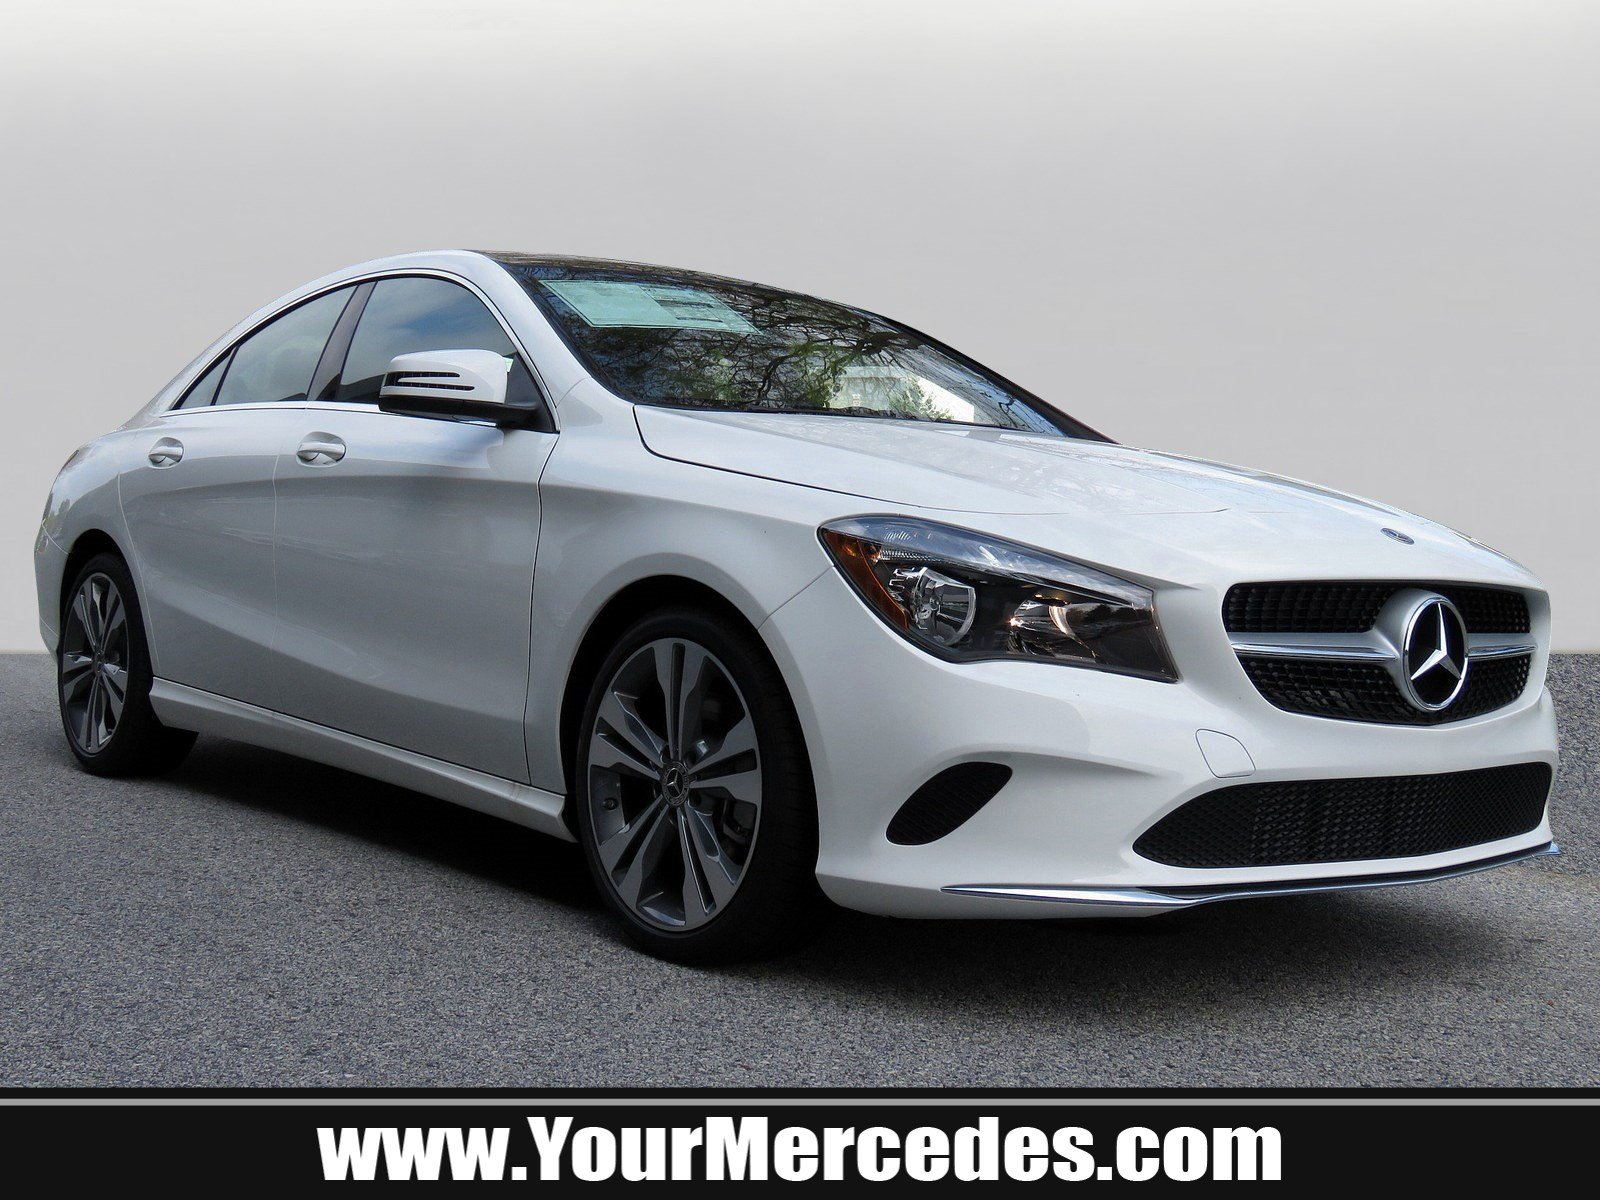 New 2019 Mercedes Benz CLA CLA 250 Coupe in Egg Harbor Township